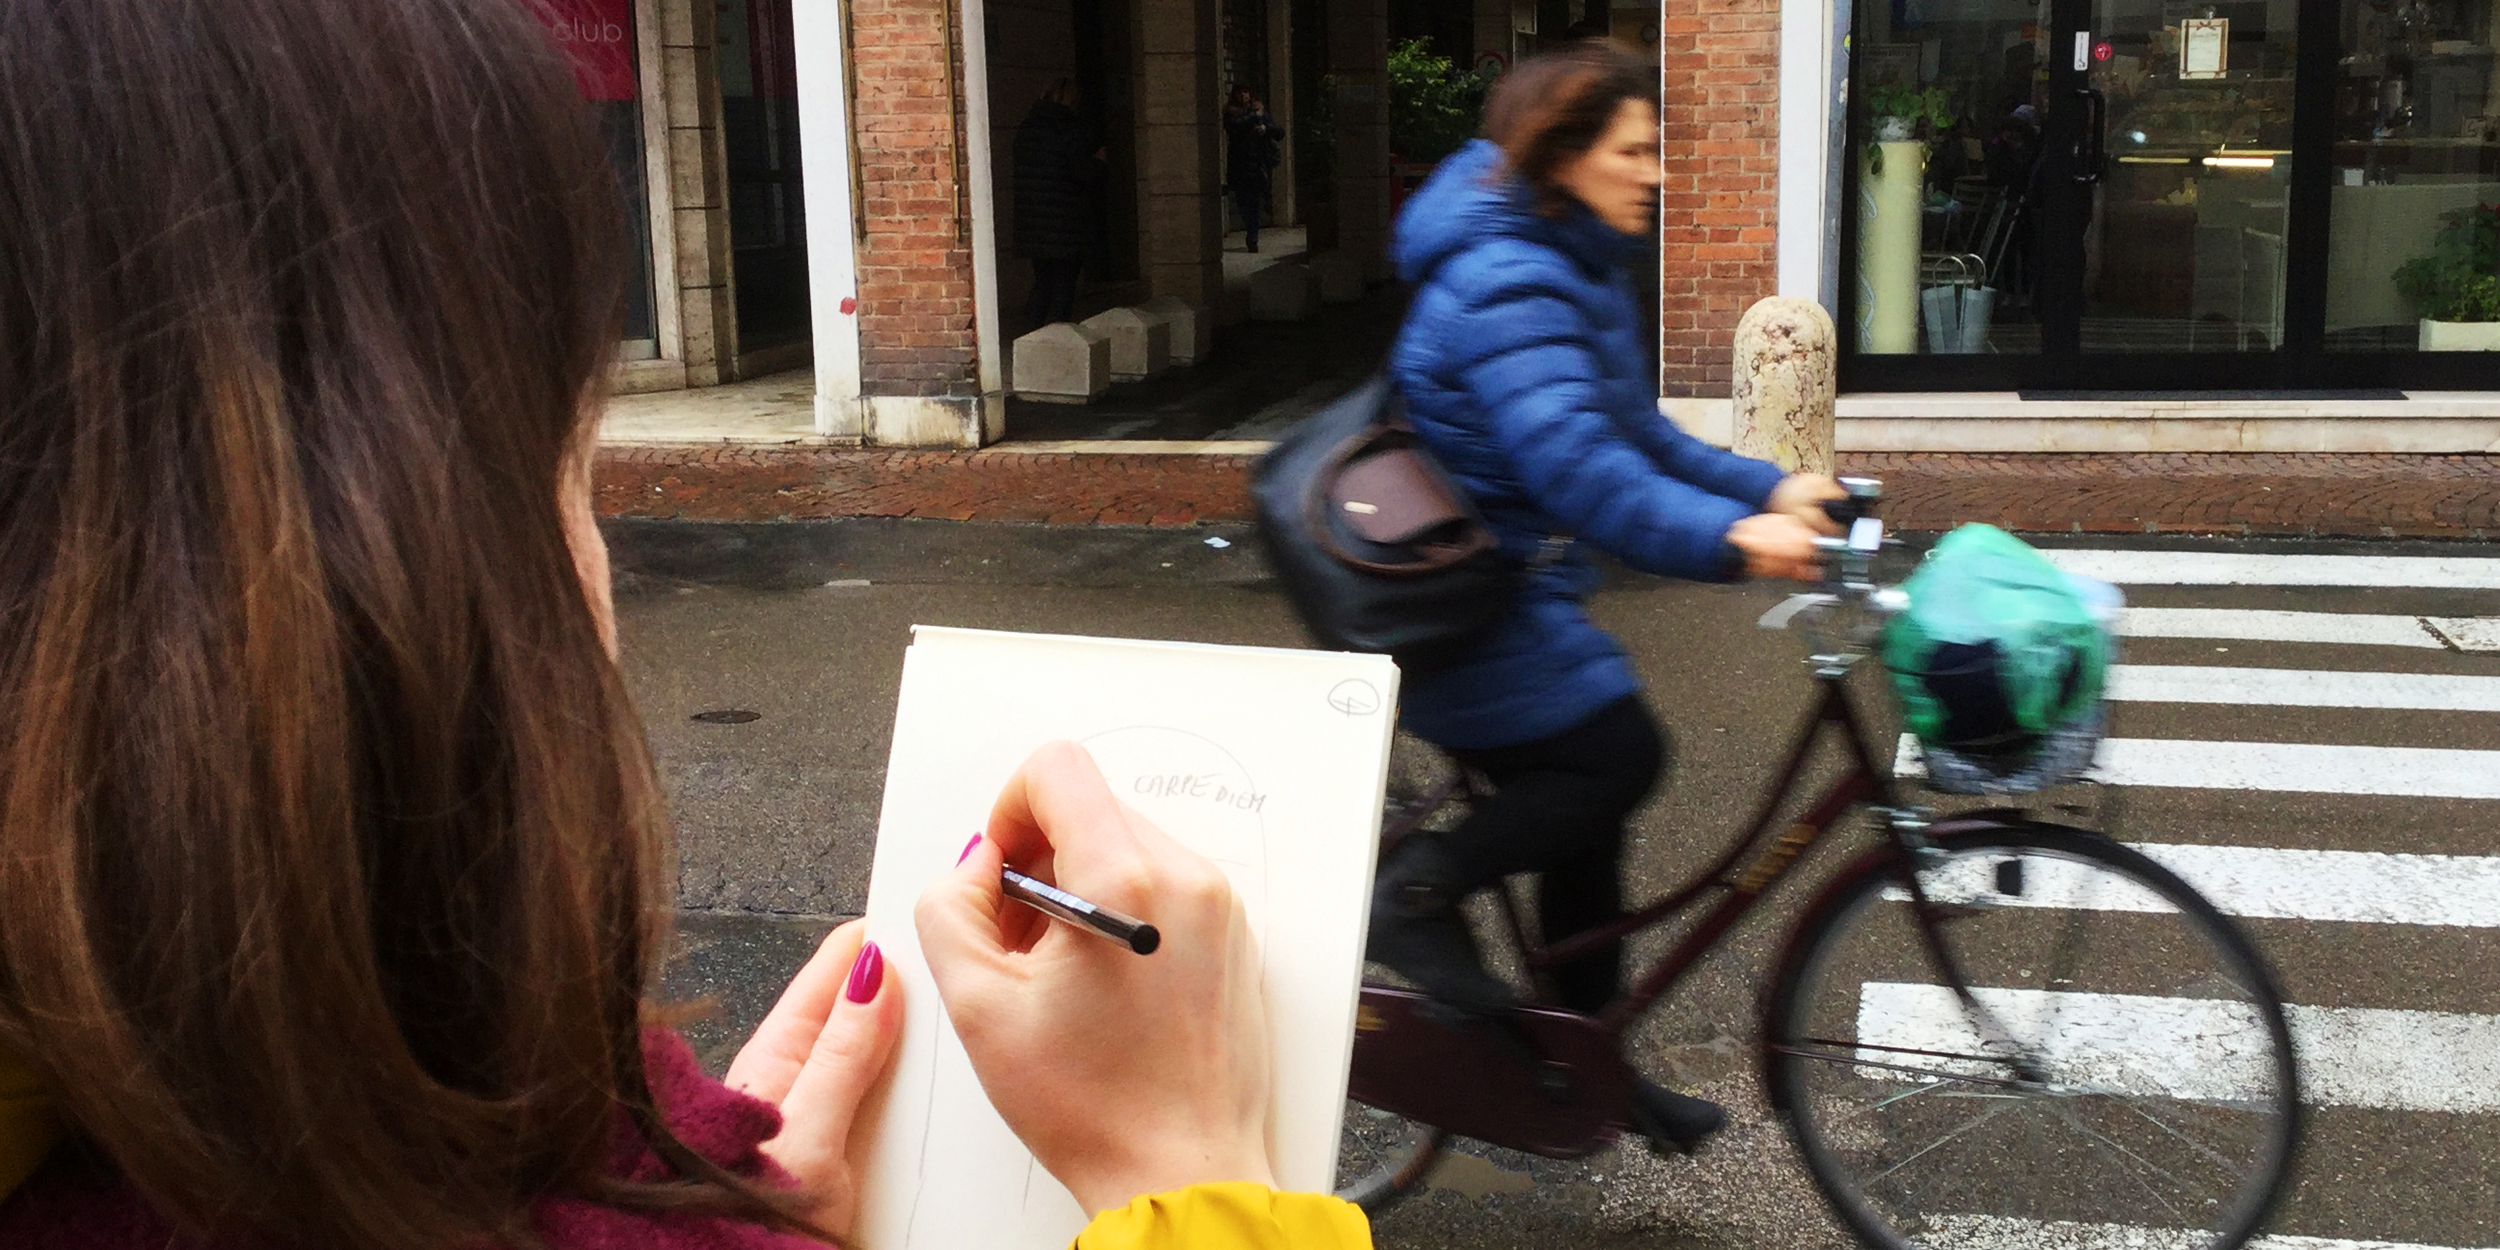 CycleSketchModena.png